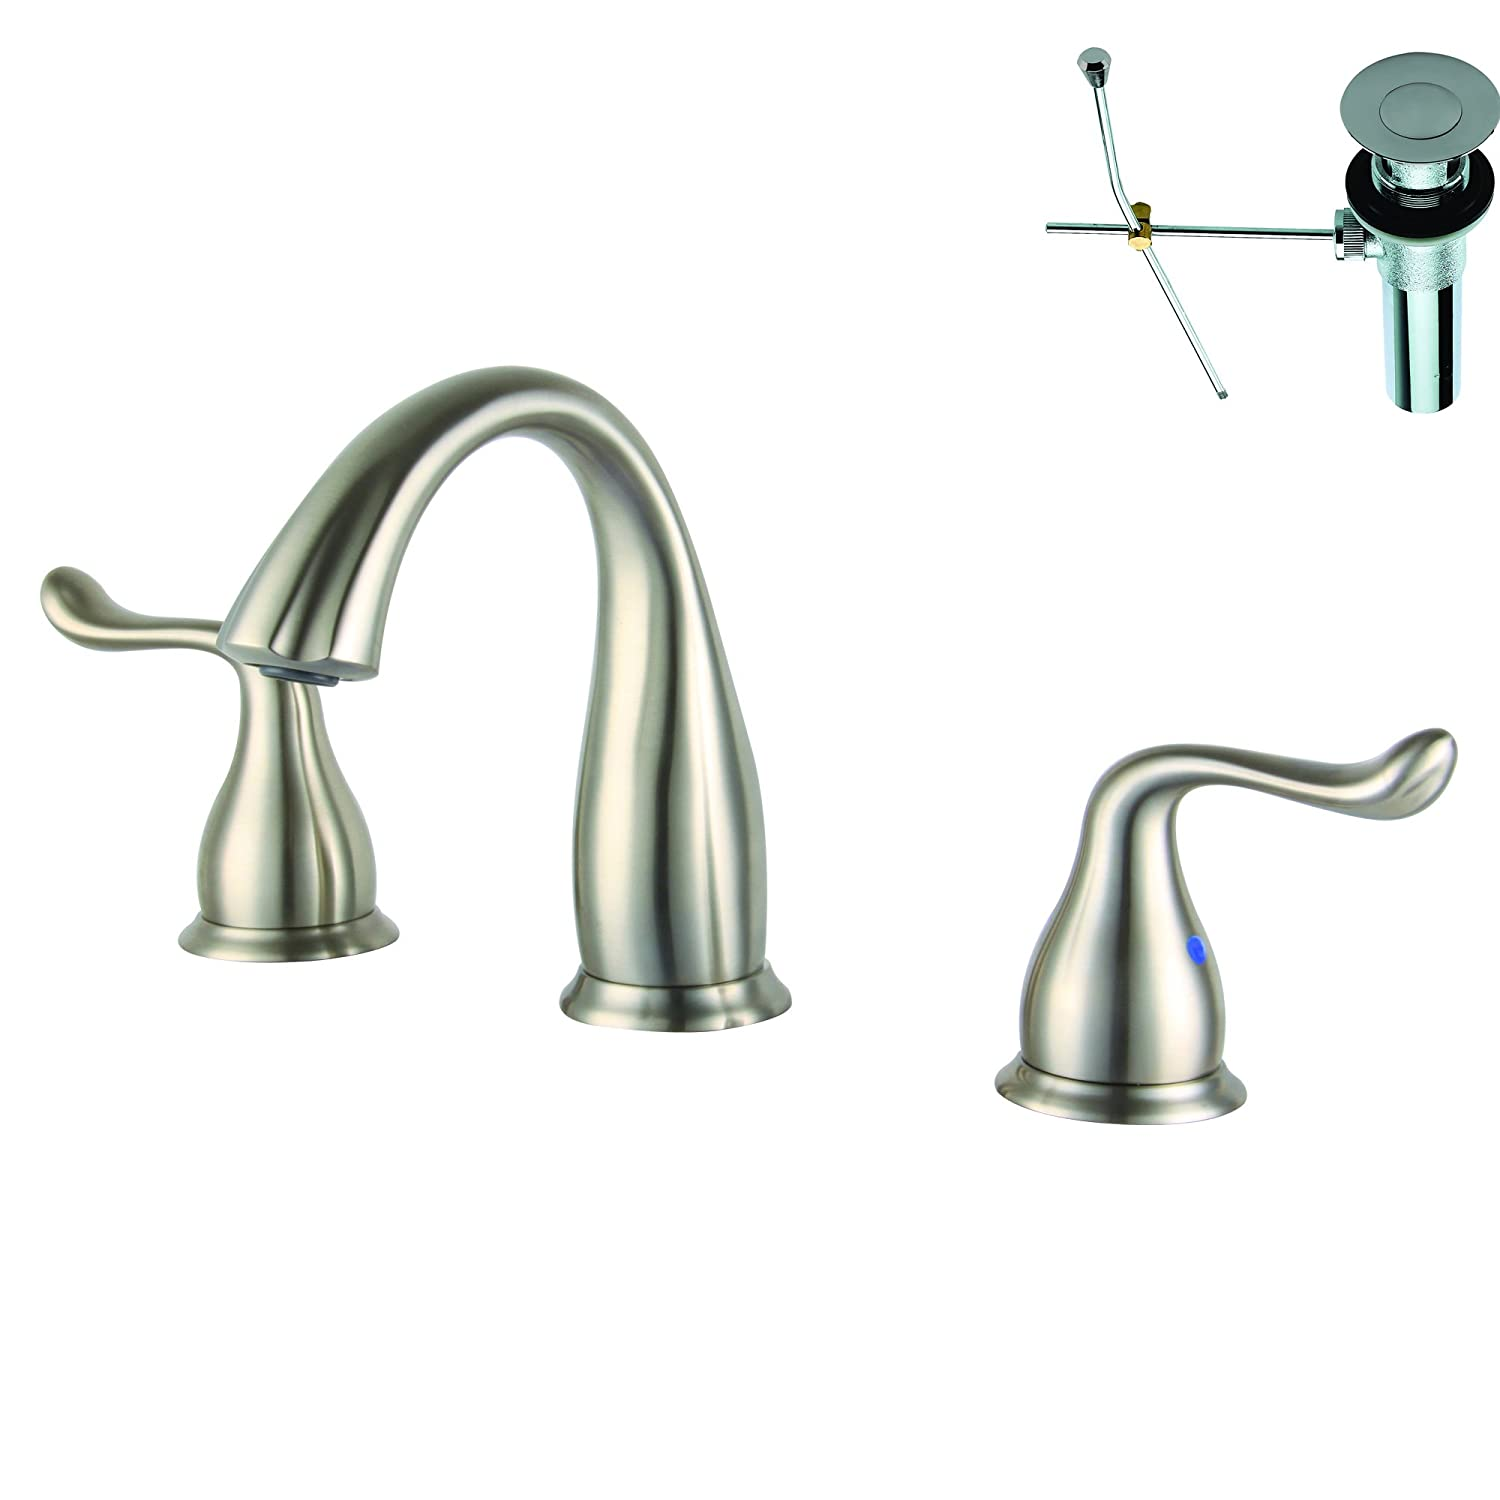 Yosemite Home Decor YPH1B258-ORBWD Two Handle 8-Inch Widespread Lavatory Faucet Oil Rubbed Bronze Finish